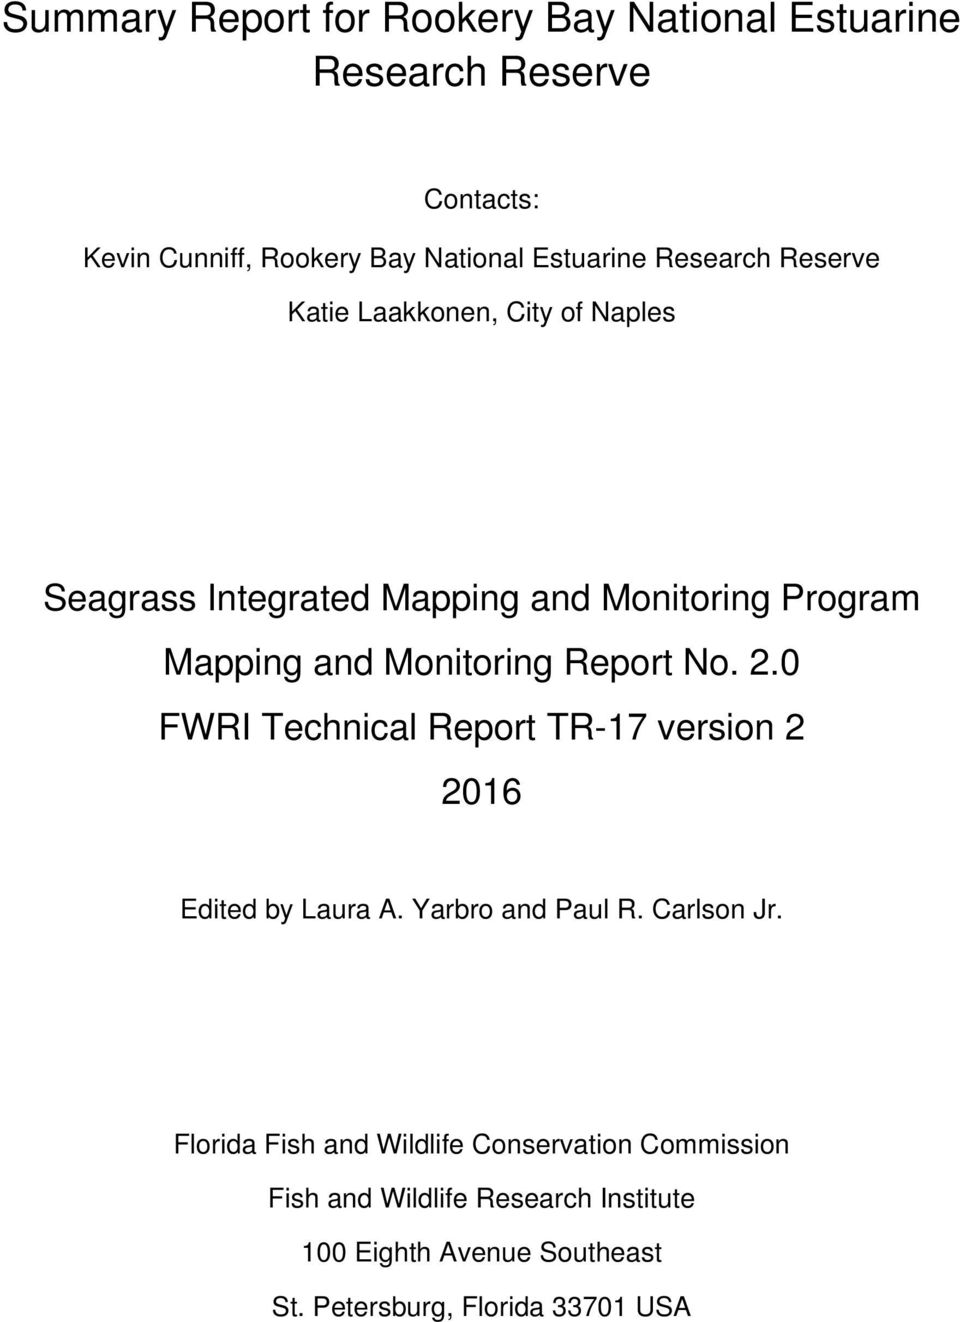 Report No. 2.0 FWRI Technical Report TR-17 version 2 2016 Edited by Laura A. Yarbro and Paul R. Carlson Jr.